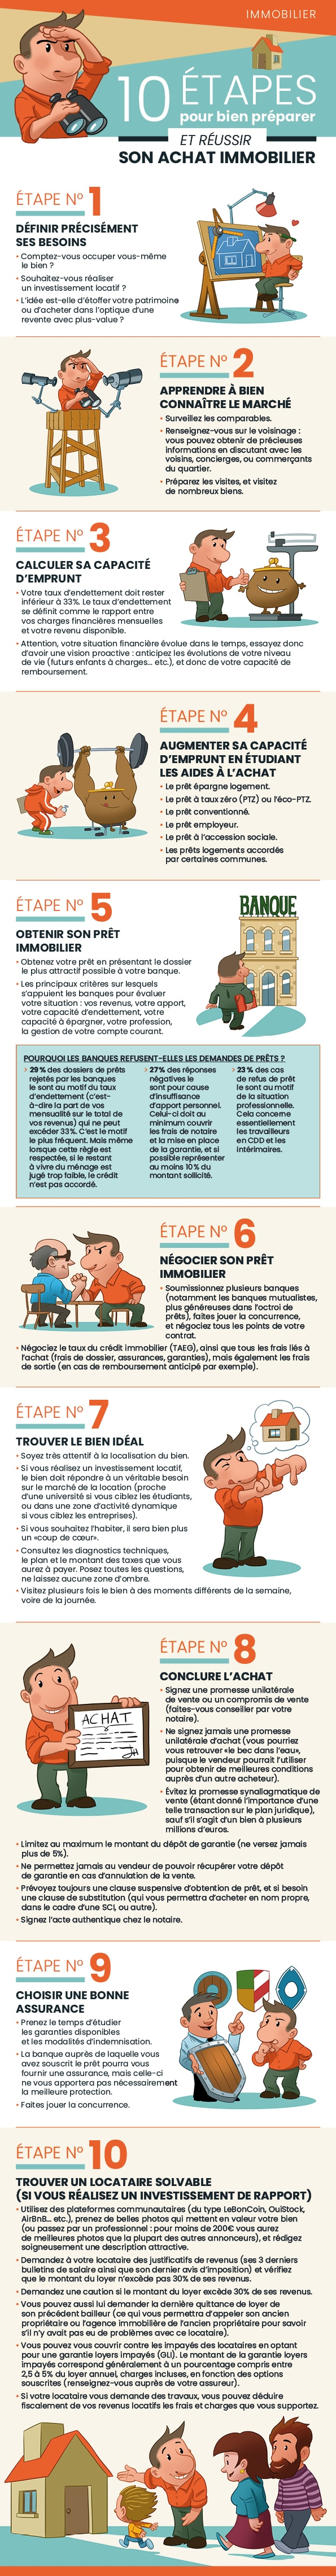 infographie achat immobilier